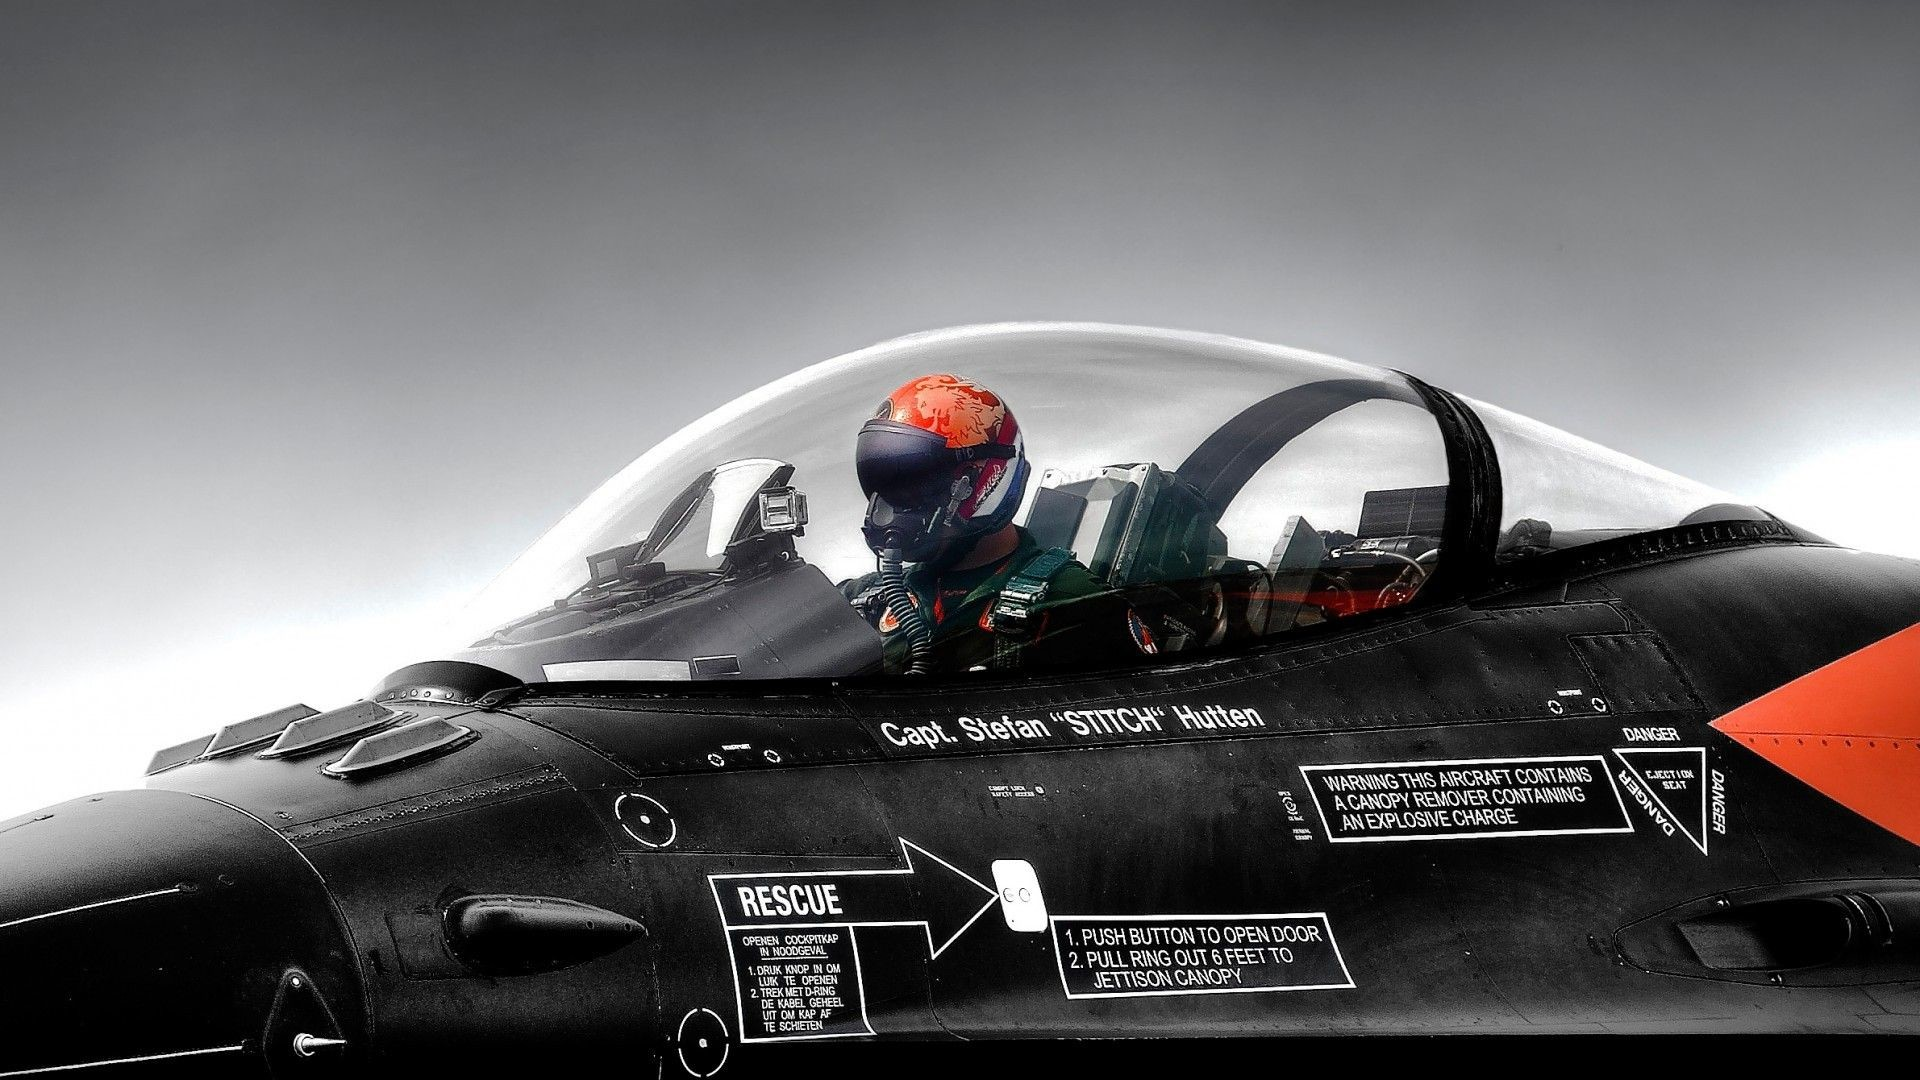 The pilot in the cockpit wallpapers and images – wallpapers .